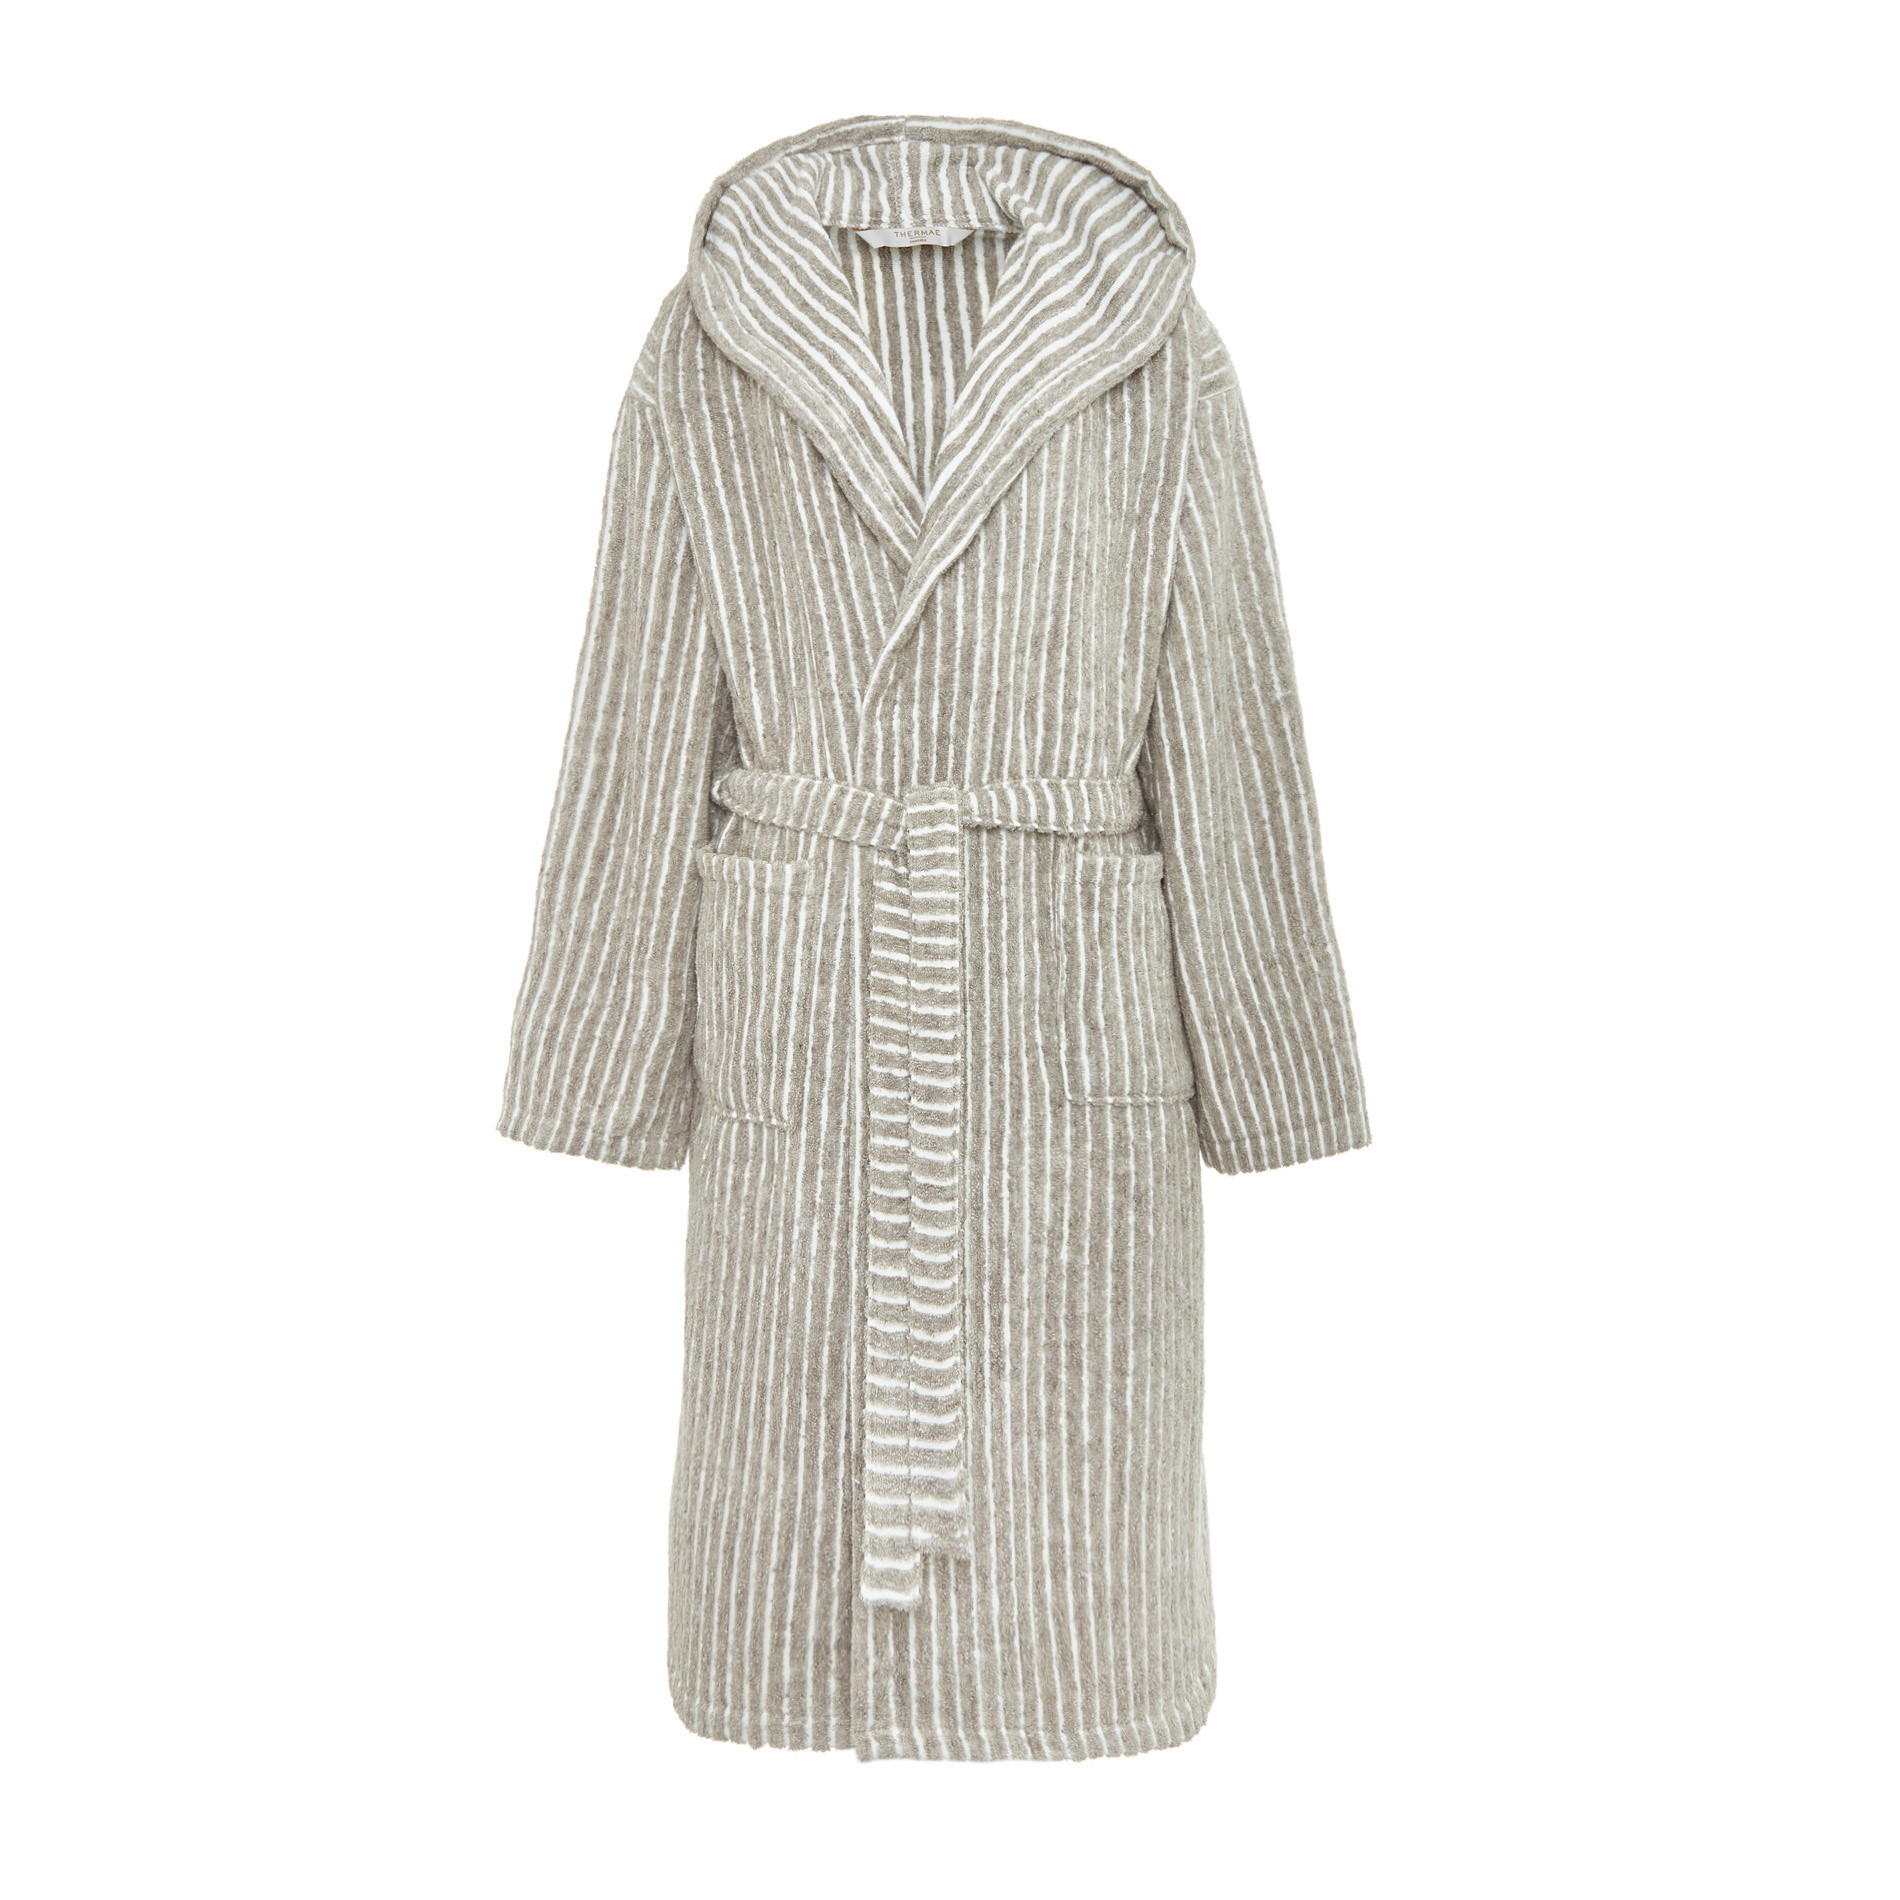 Accappatoio puro cotone a righe Thermae, Beige, large image number 1